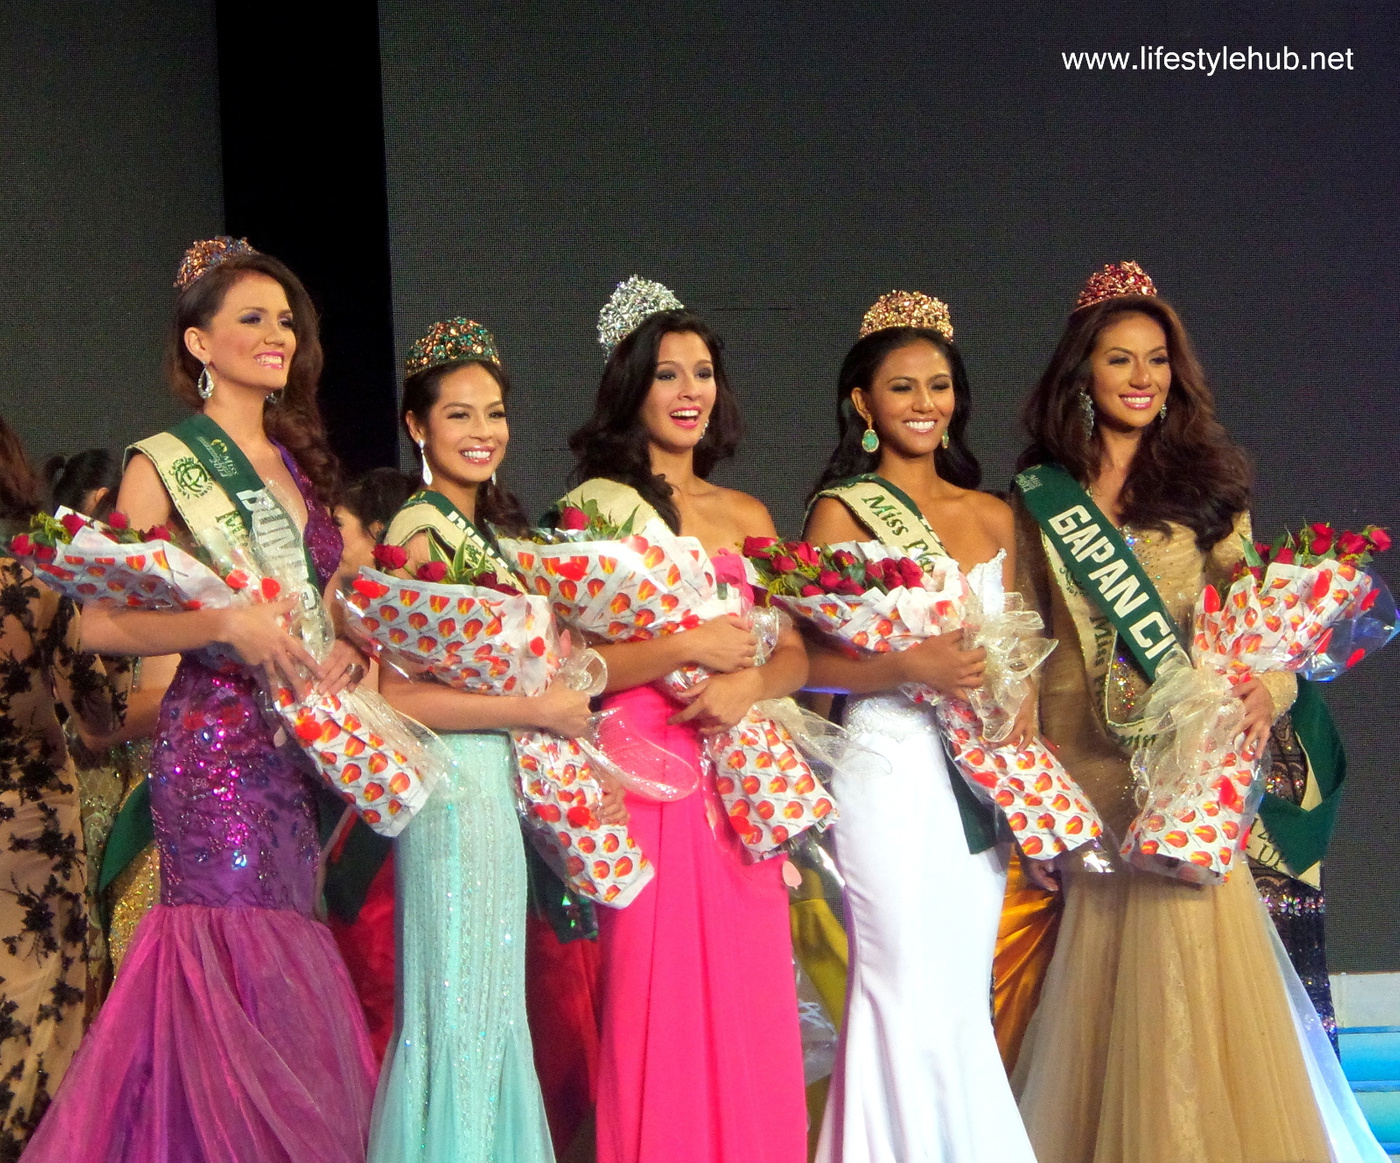 miss philippines earth 2014 coronation photos